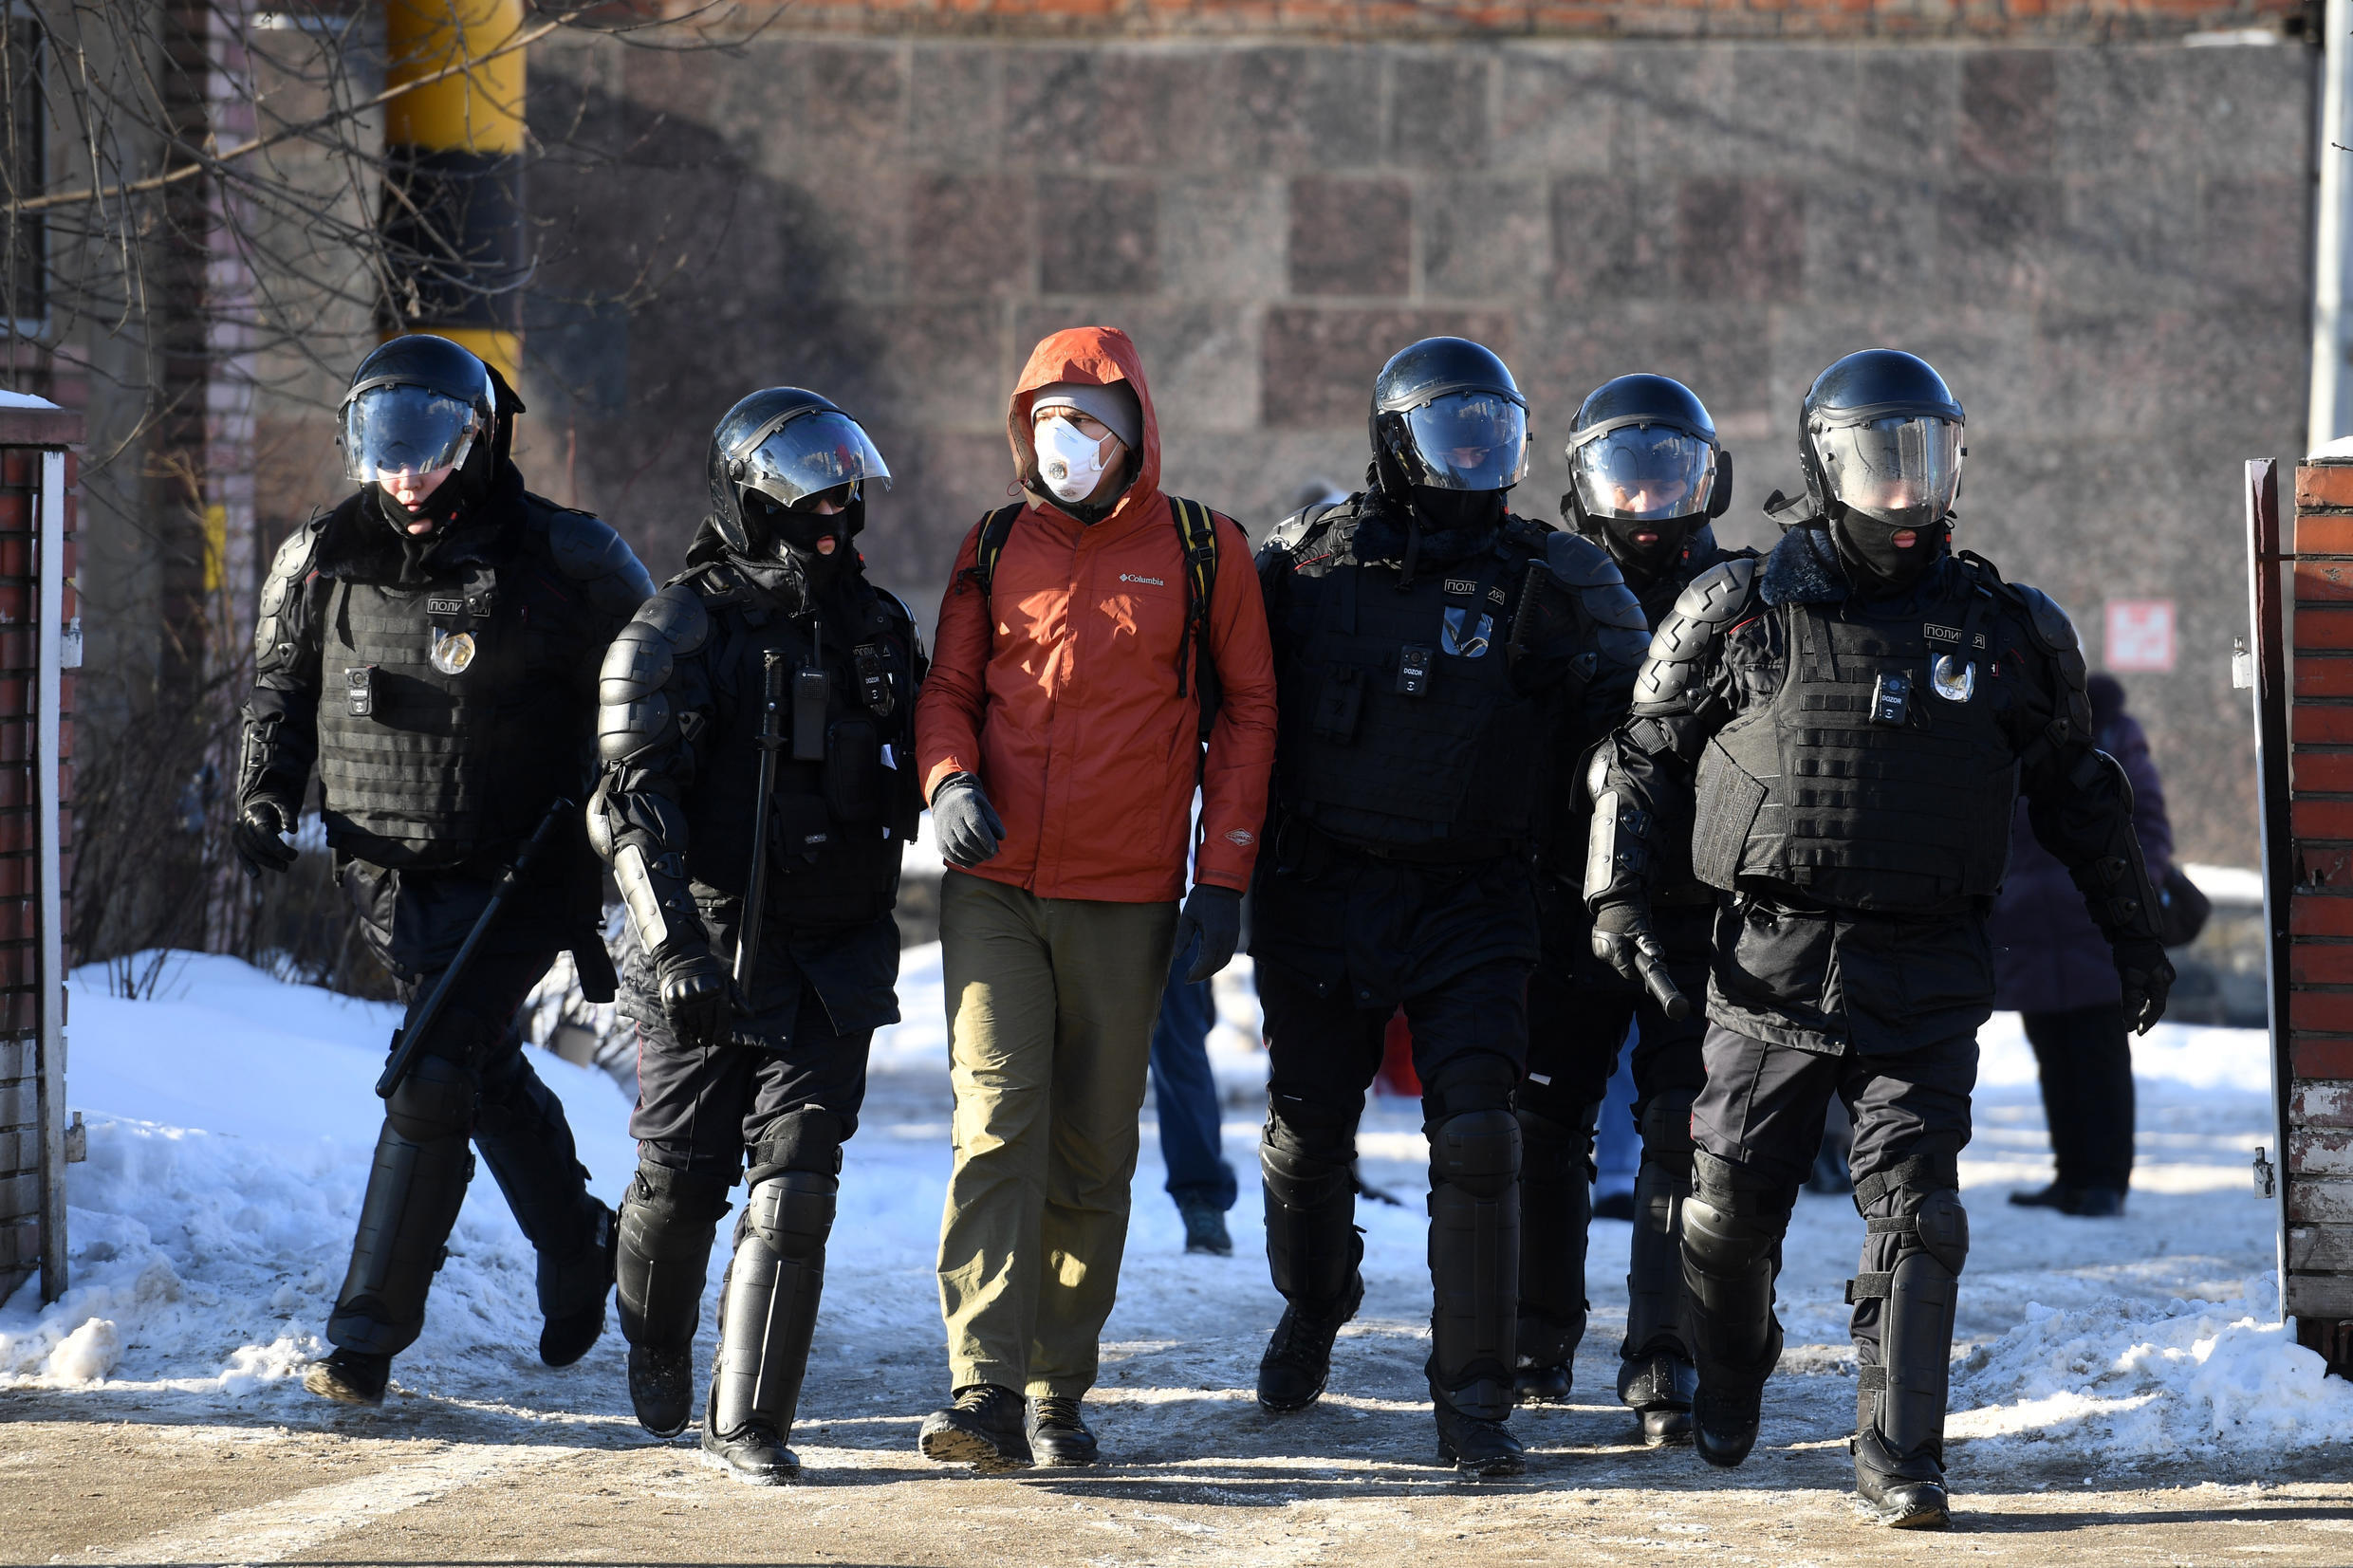 Russian police officers detain a man near the Moscow City Court where opposition leader Alexei Navalny was tried and sentenced on Tuesday, February 2, 2021